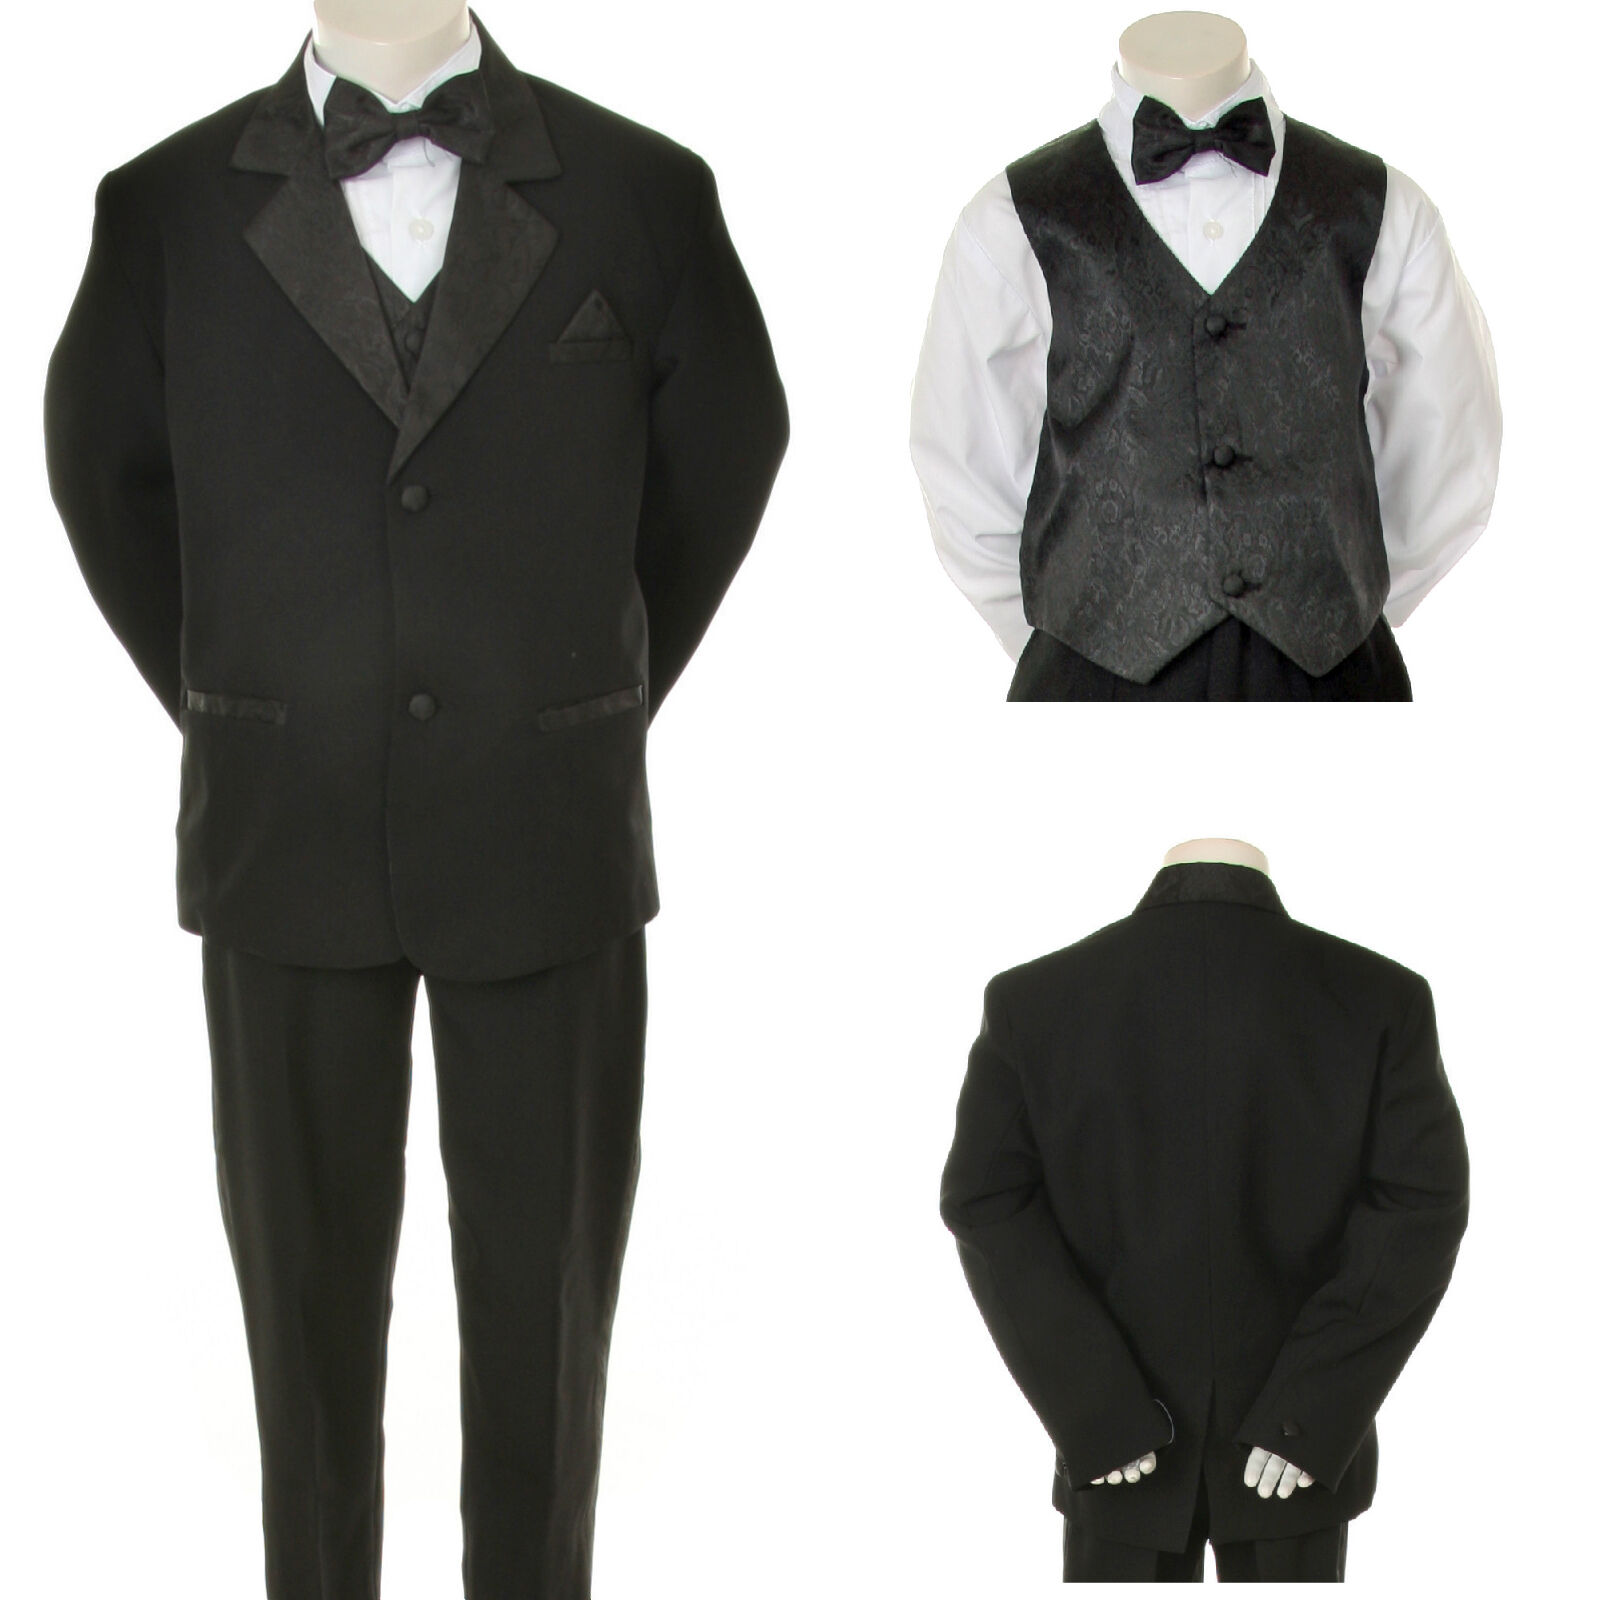 Wedding & Formal Occasion Clothing Shoes & Accessories